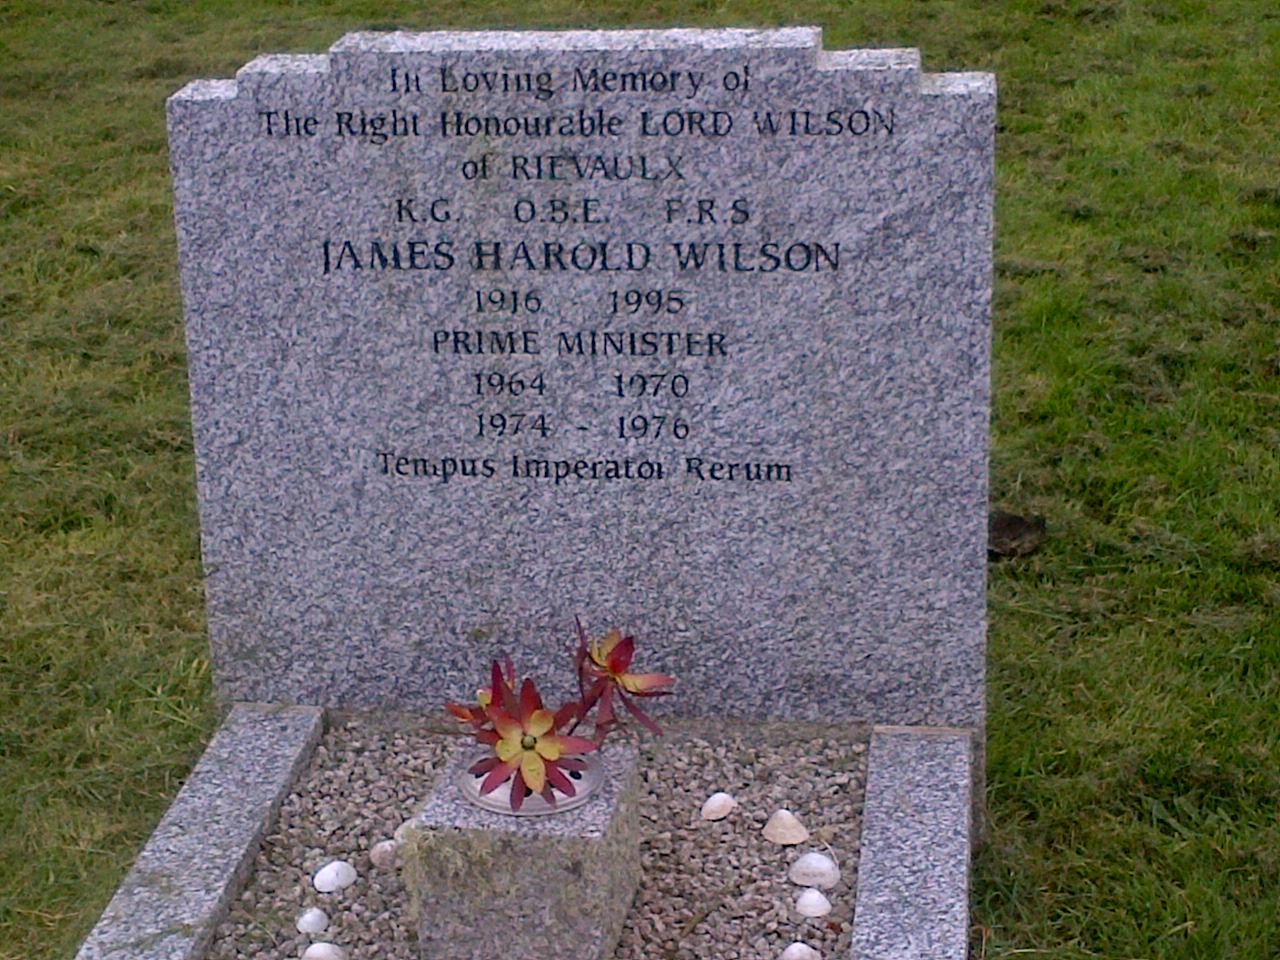 Grave of Harold Wilson at church on St Mary's, Isles of Scilly